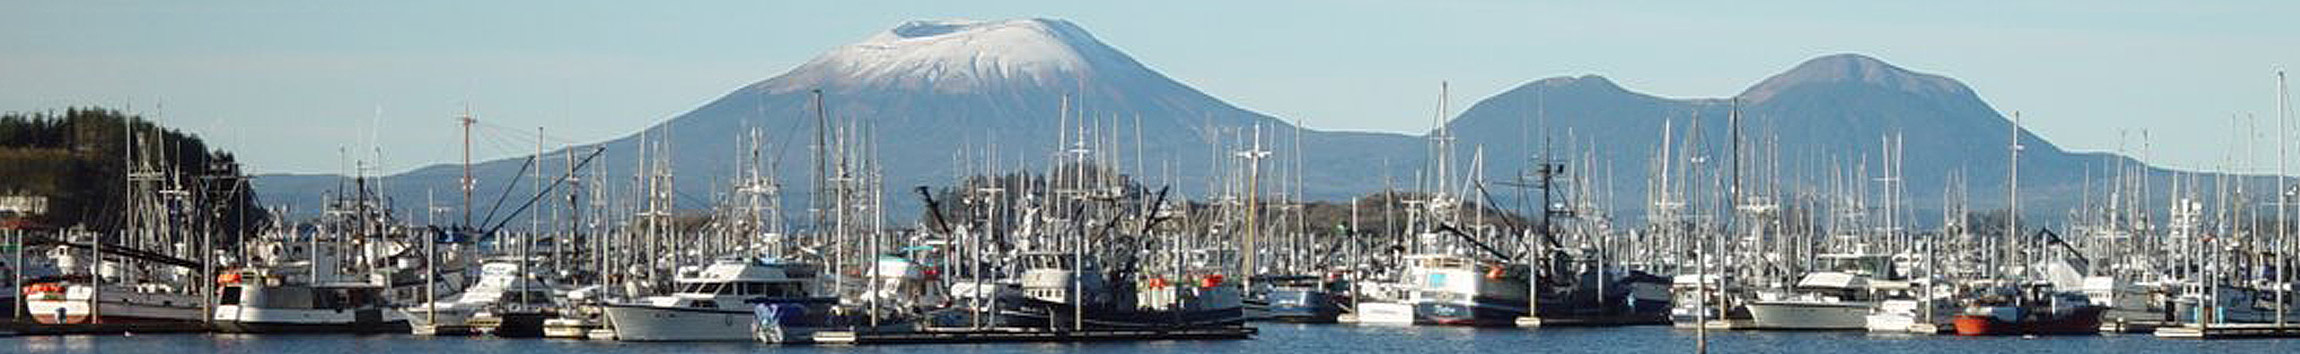 Mount Edgecumbe stands over a harbor in Sitka, Alaska